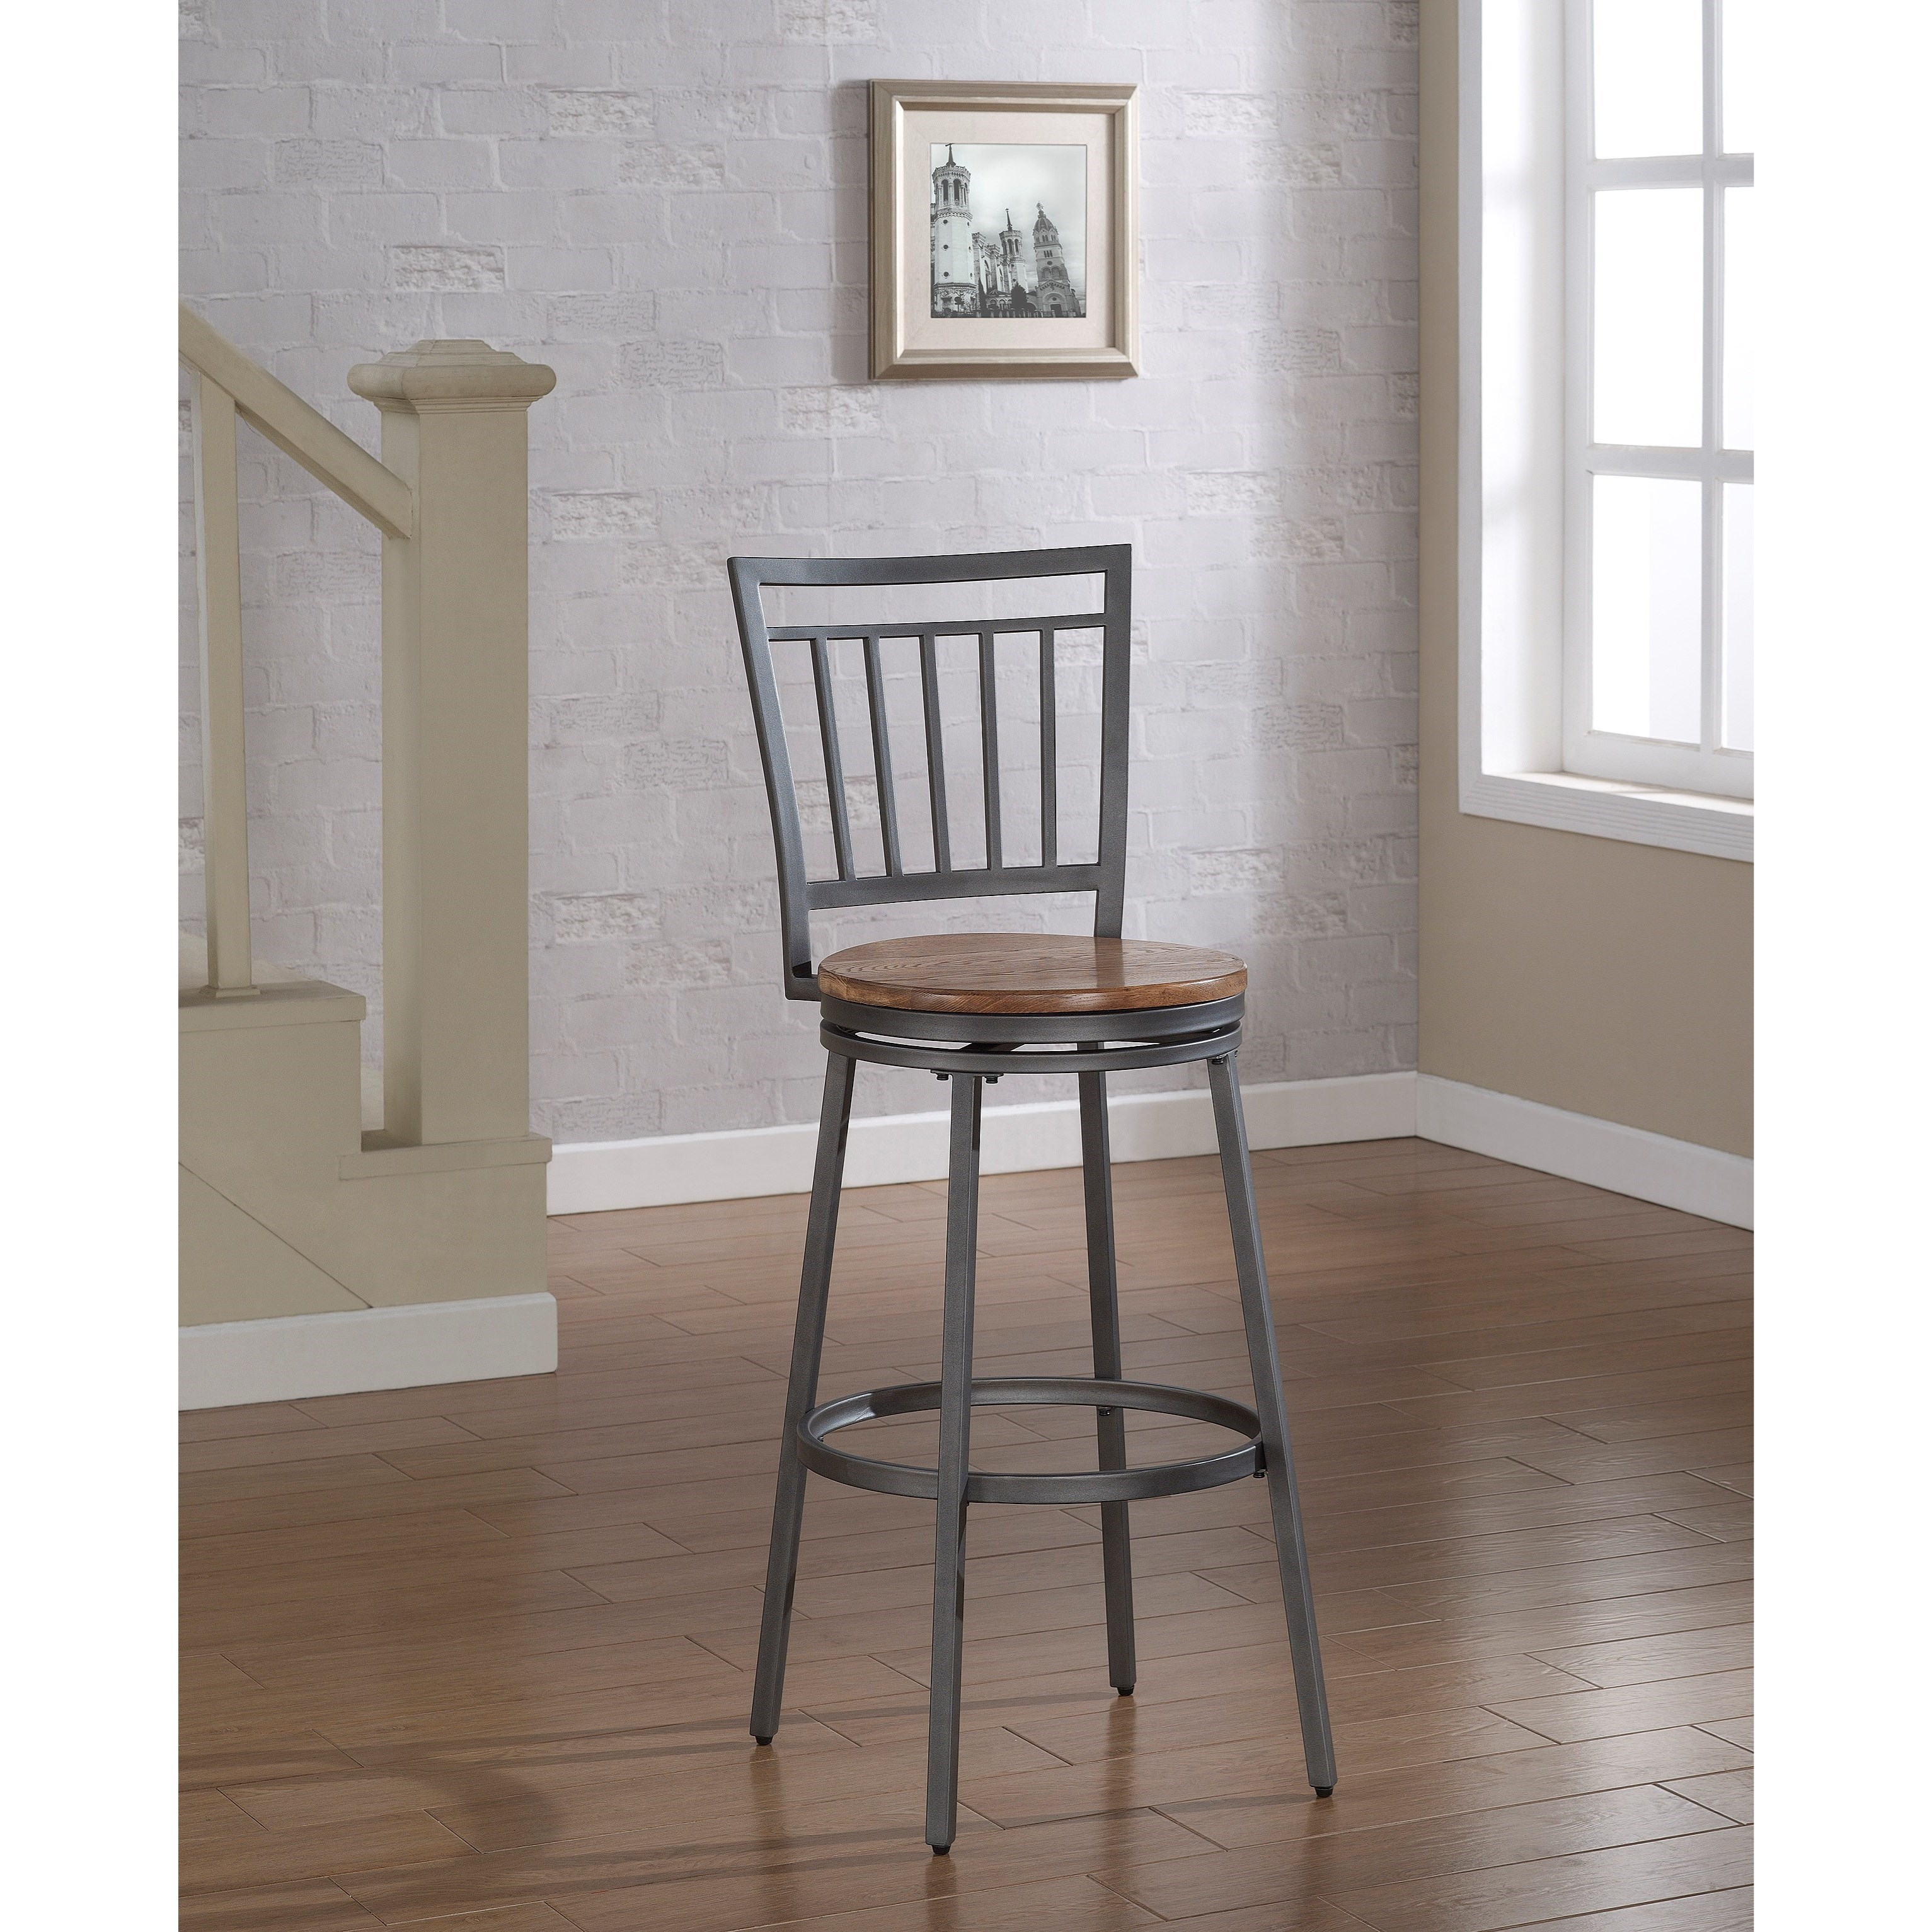 American Woodcrafters Barstools Stool with Slat Back and Metal Frame - Item Number: B1-101-25W